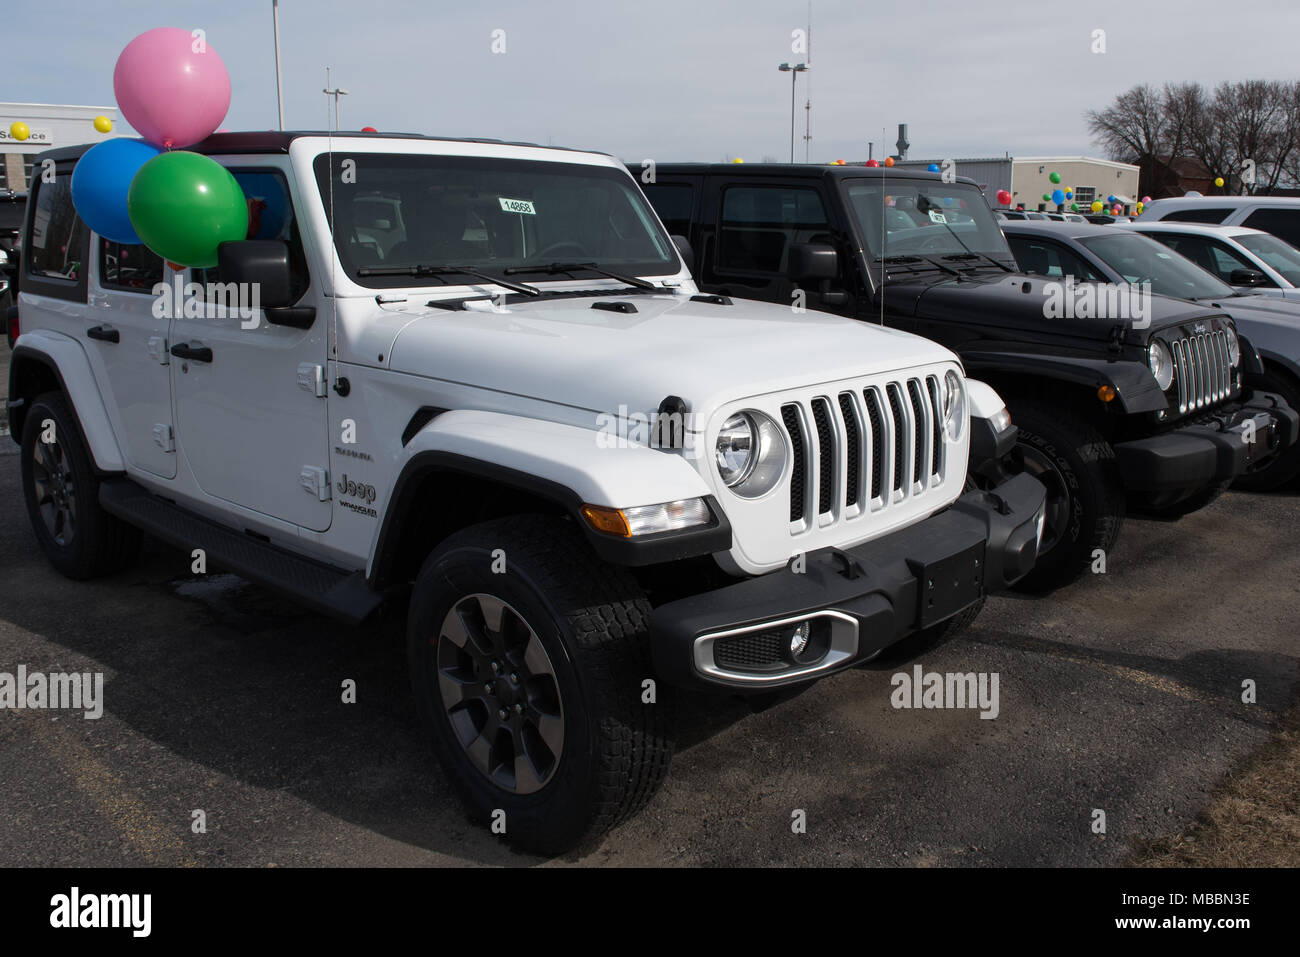 go angeles off wrangler arrives a car in the folds rubicon drier new events goes official news windscreen pictures jeep because down generally shows than for reborn sale suv first is uk motor america on experience los anywhere roading